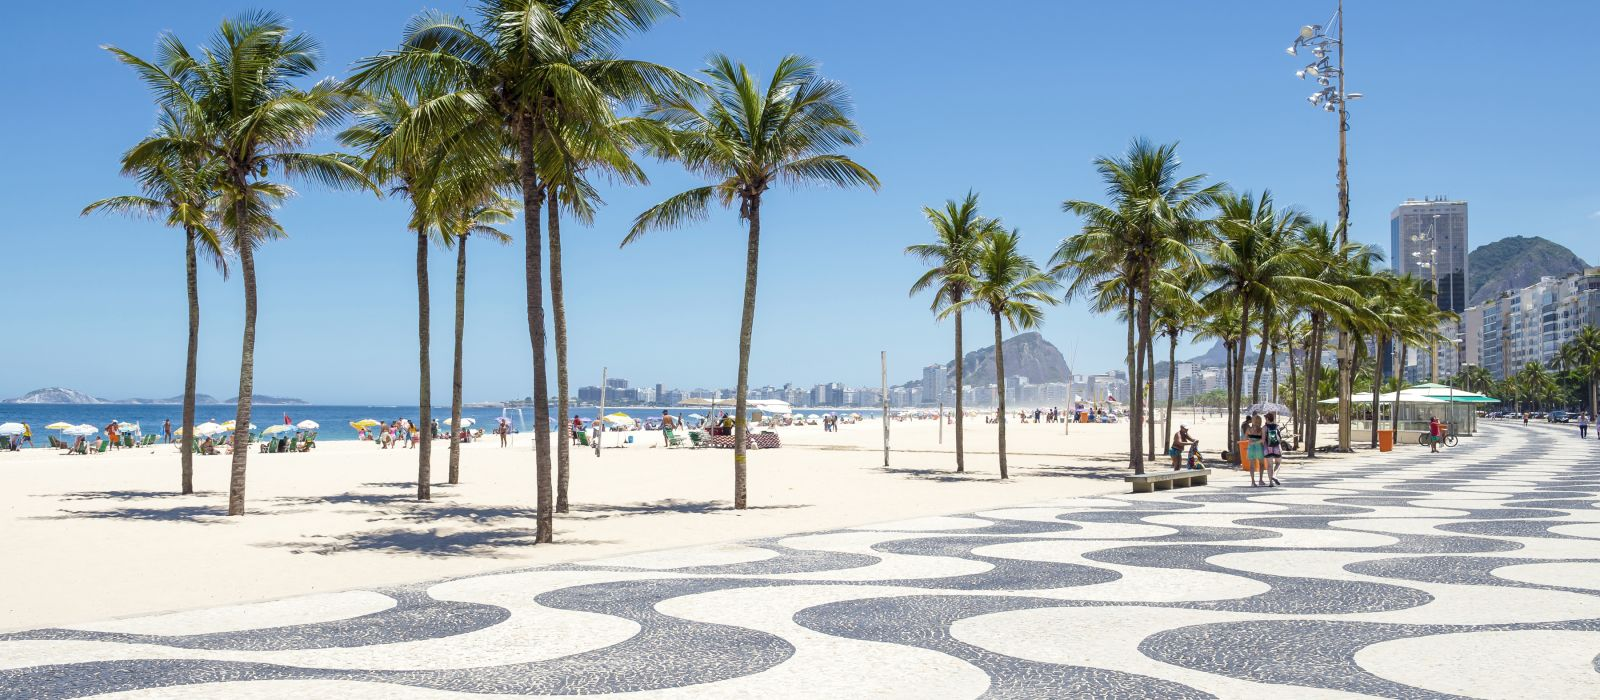 Bright scenic morning view of the iconic boardwalk at Copacabana Beach in Rio de Janeiro, Brazil, South America